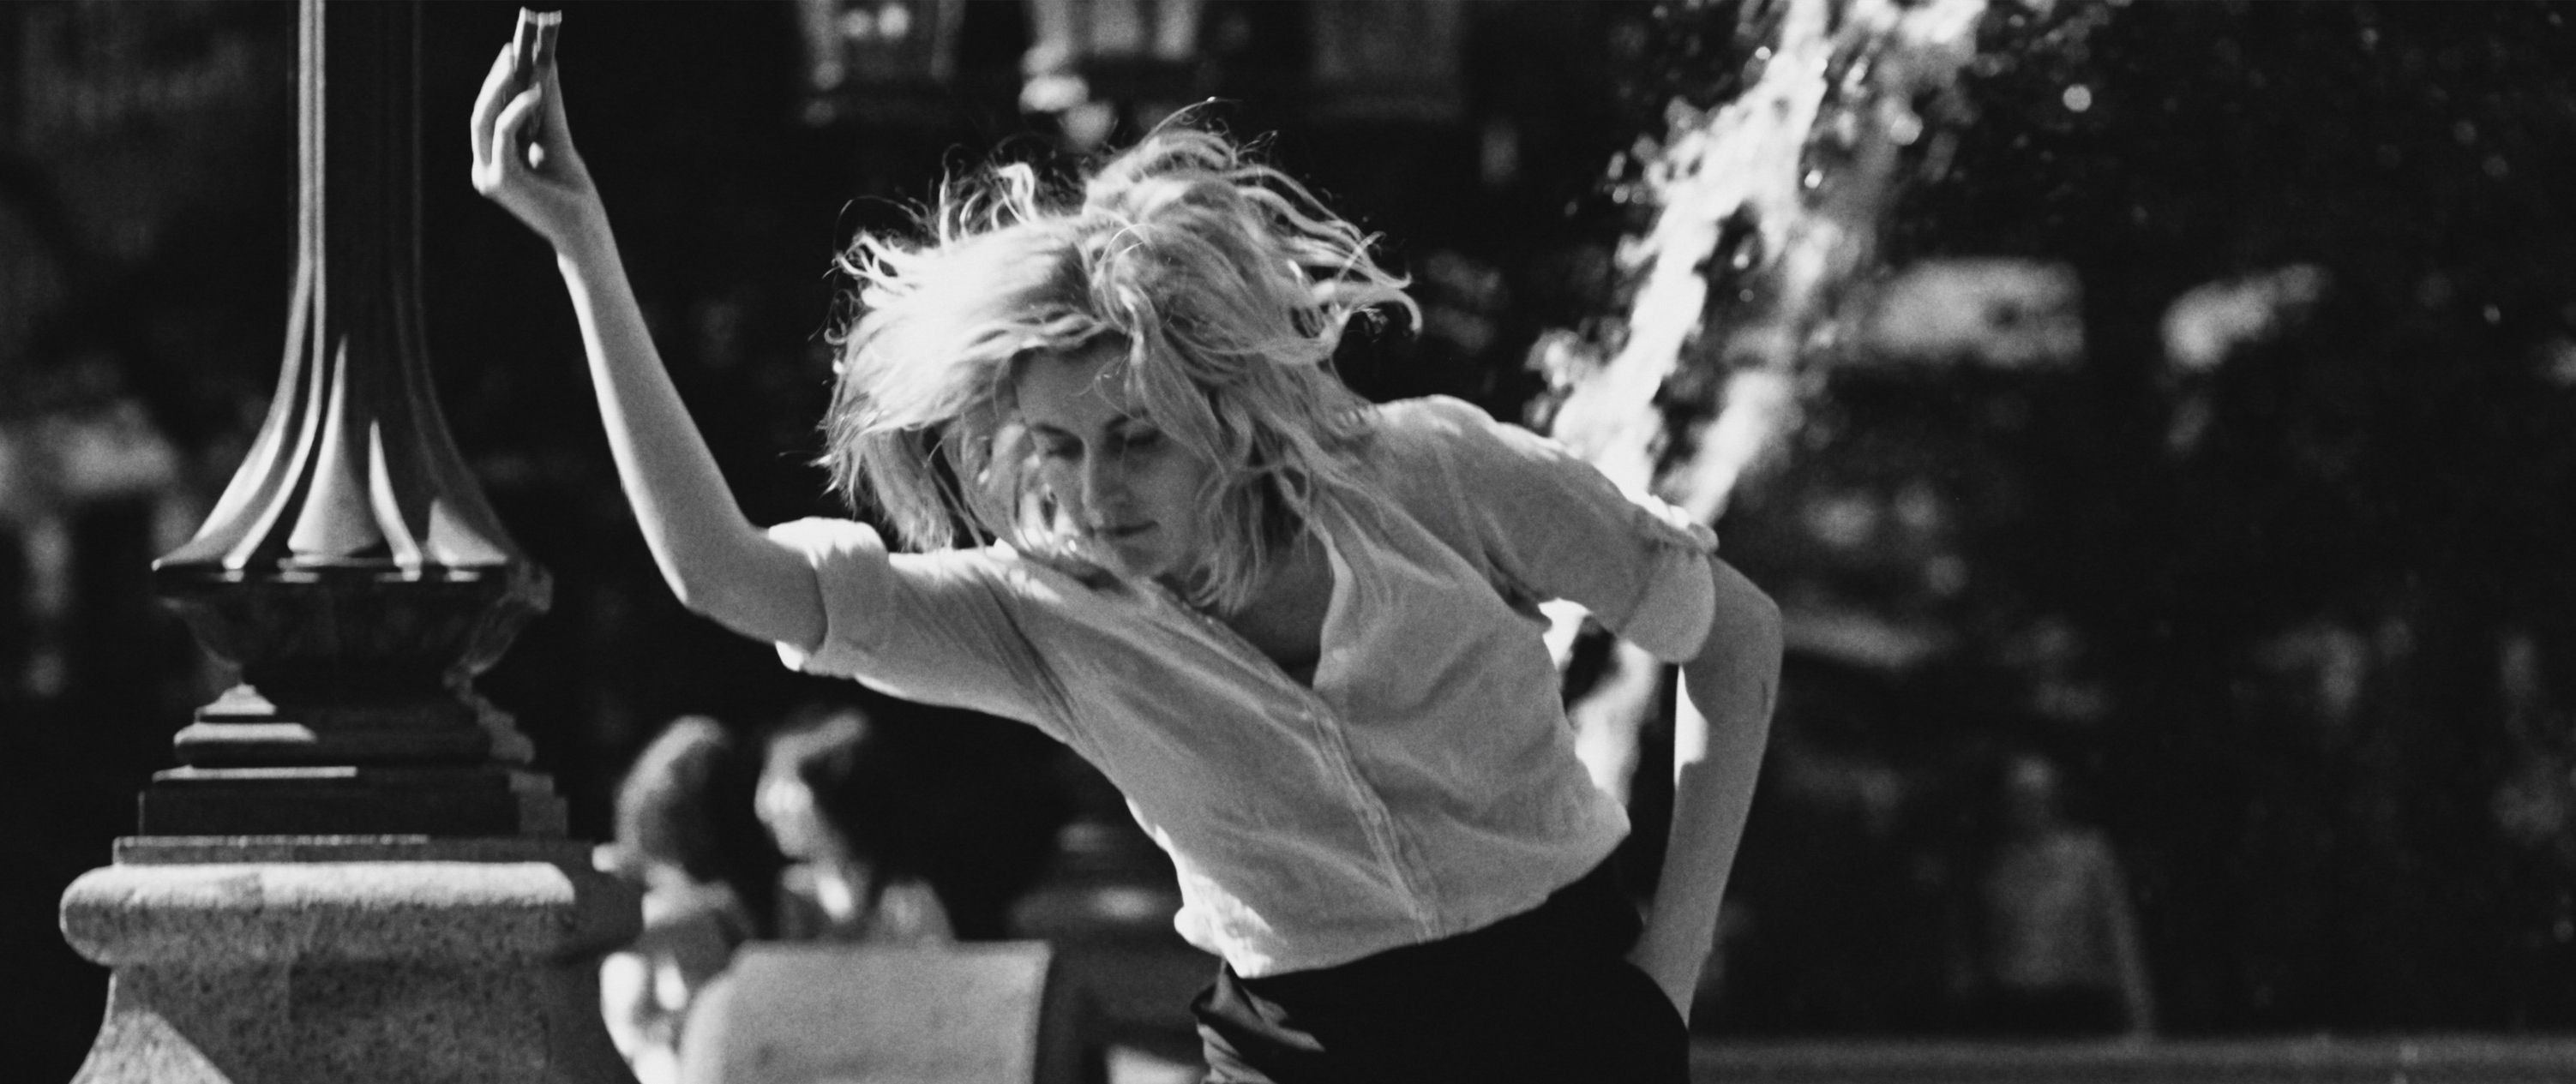 An image from Frances Ha